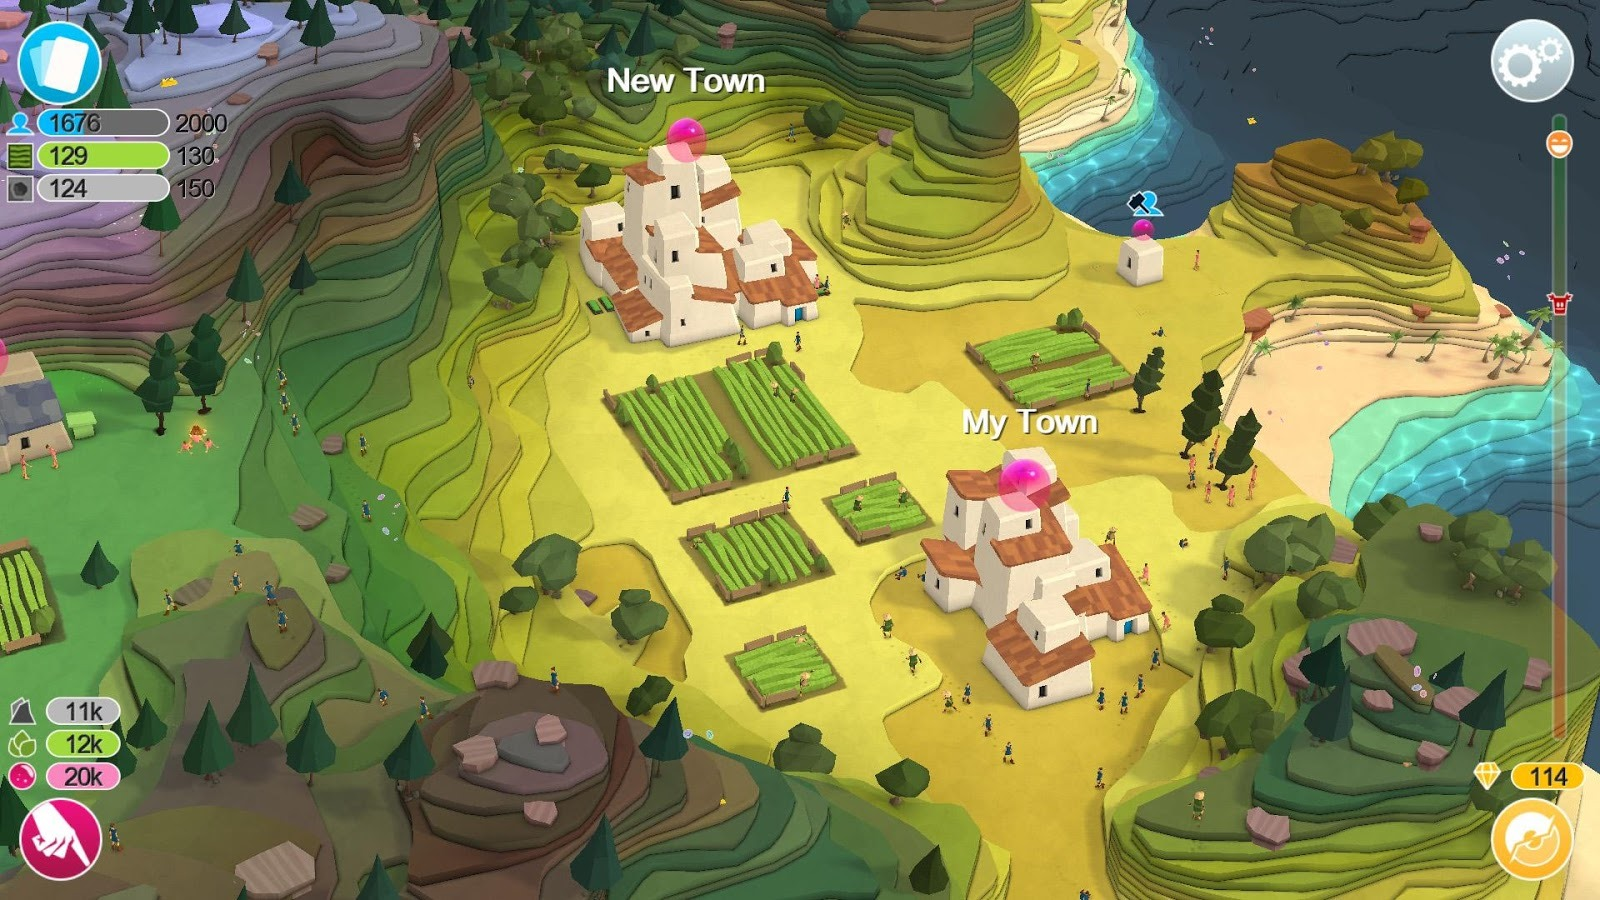 Play As A Benevolent Creator In Peter Molyneux's Godus, Now Available For Android